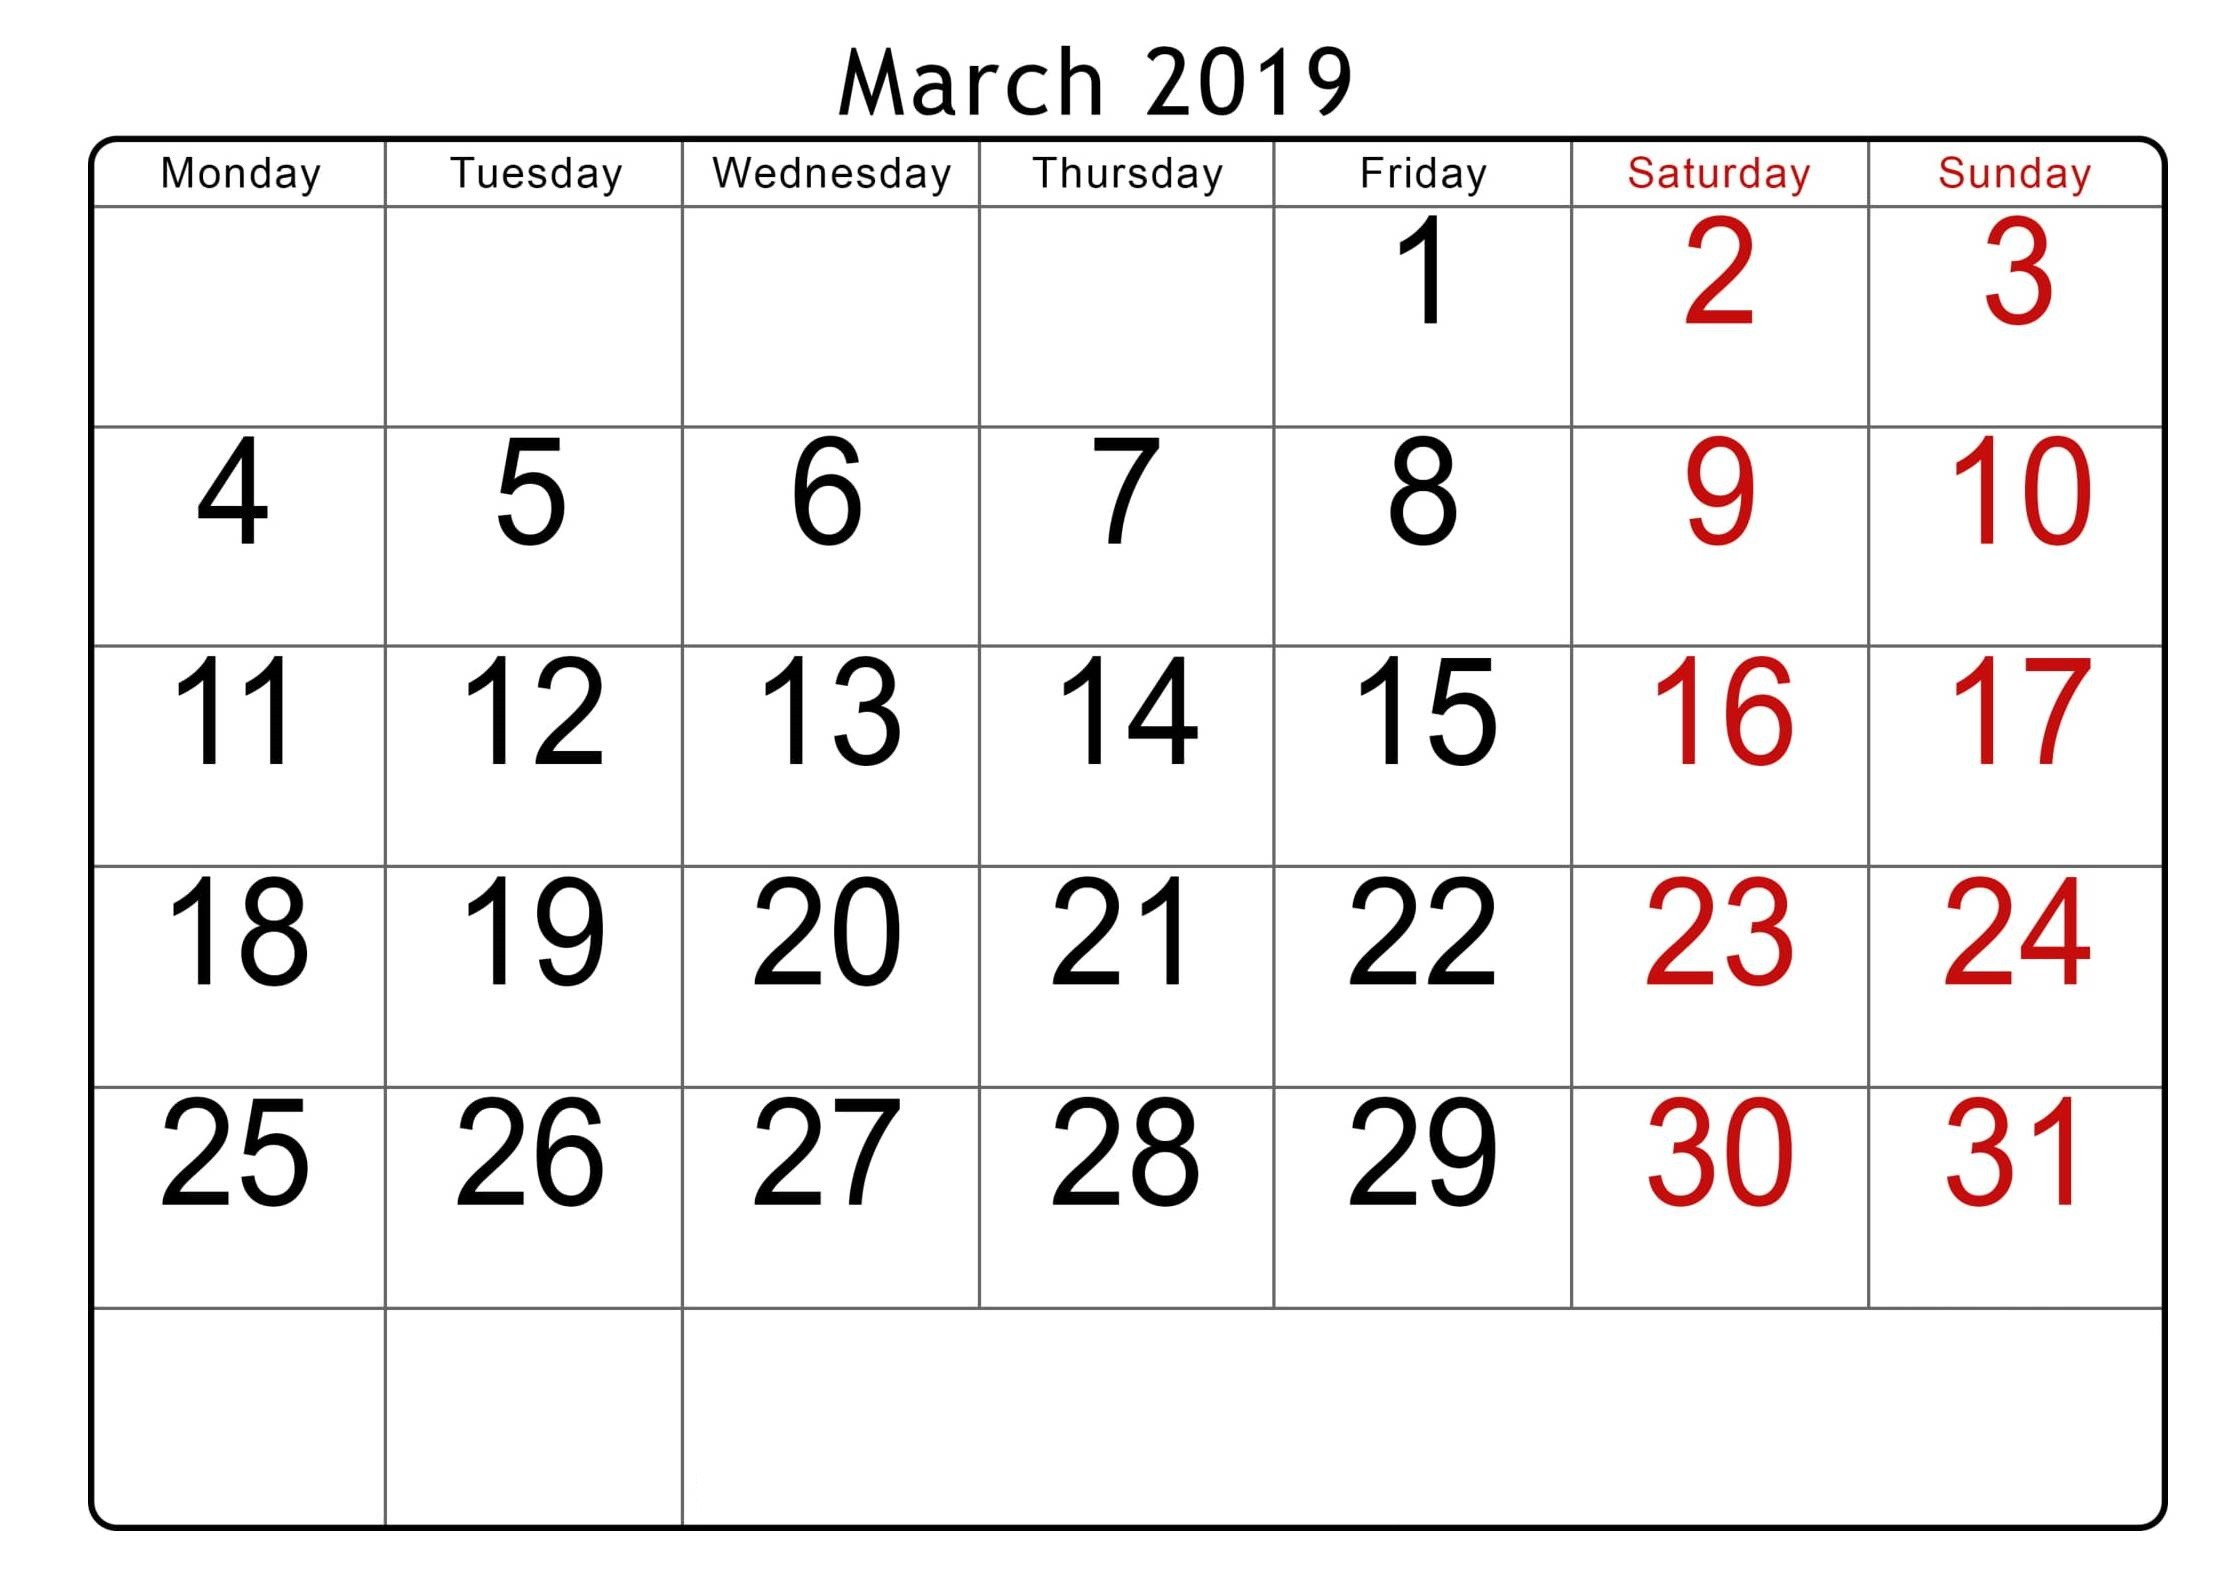 March Calendar 2019 Recientes March Calendar for 2019 Pdf Printable 2019 Calendar Of March Calendar 2019 Más Populares February March Calendar 2019 2018 Printable Calendar Store